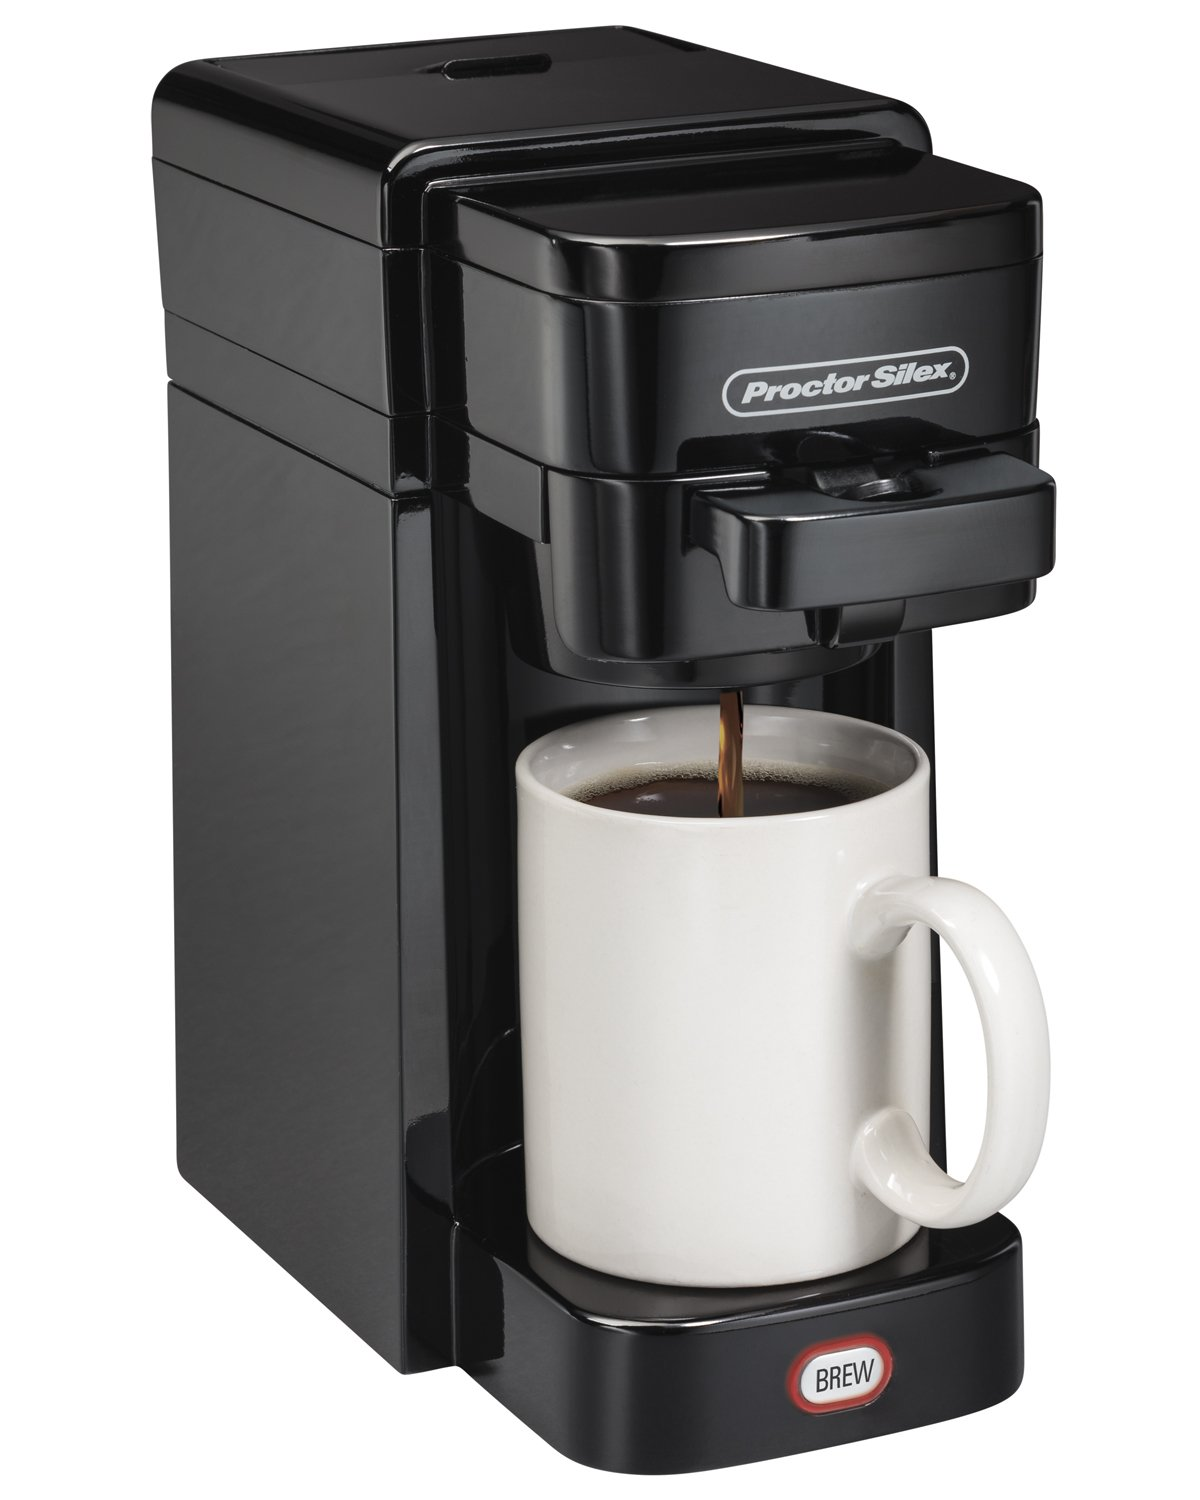 proctor silex 100 cup coffee maker manual